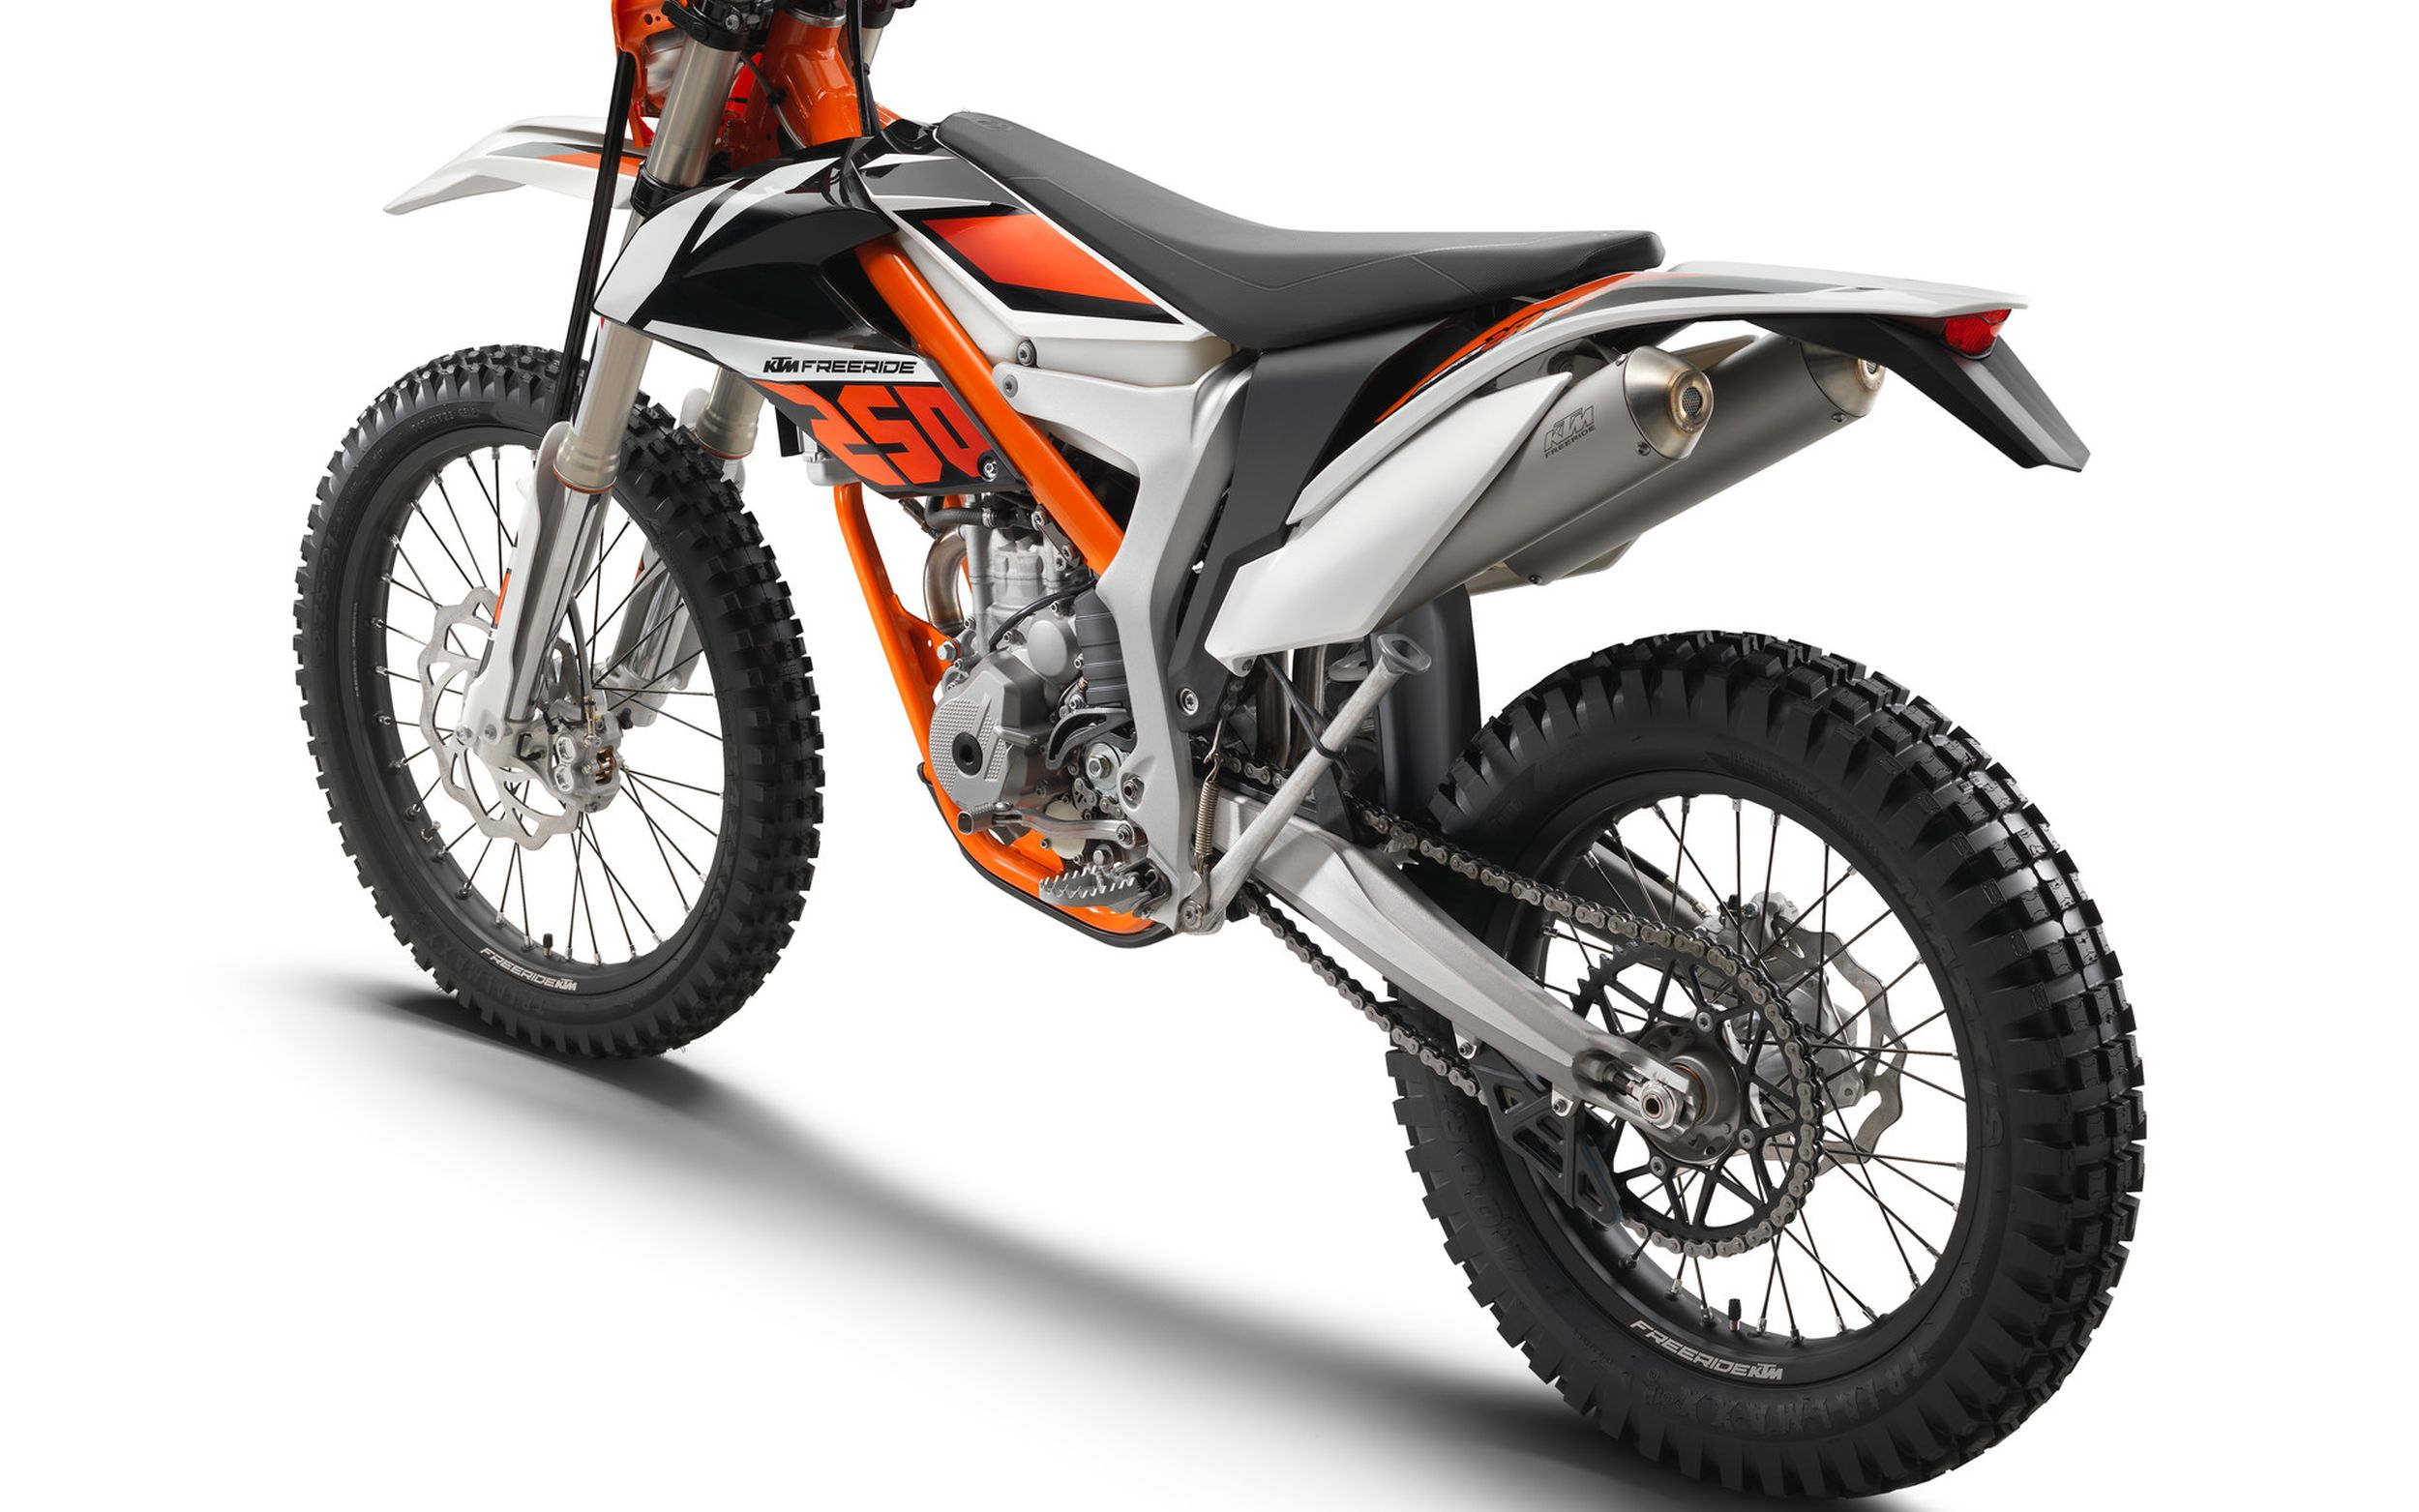 gebrauchte und neue ktm freeride 250 f motorr der kaufen. Black Bedroom Furniture Sets. Home Design Ideas